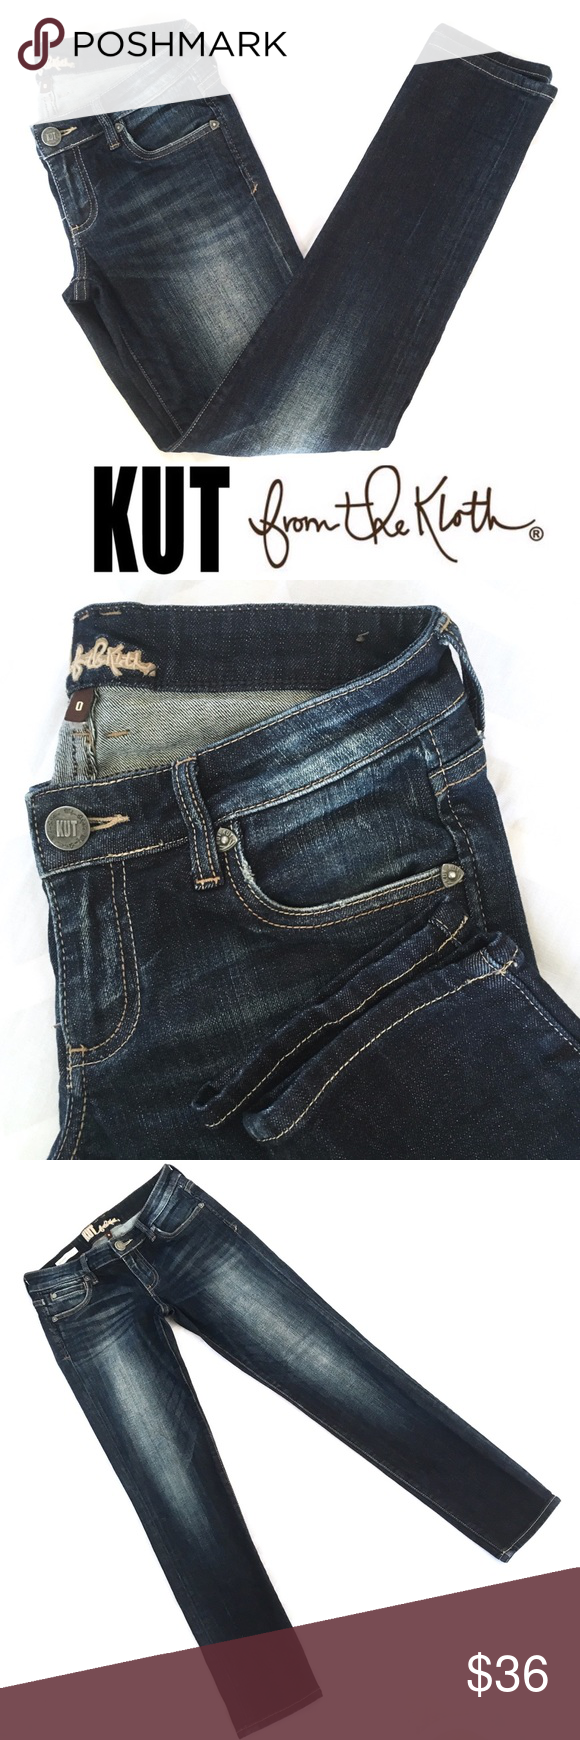 Kut From The Kloth Catherine Boyfriend Jeans Kut From The Kloth